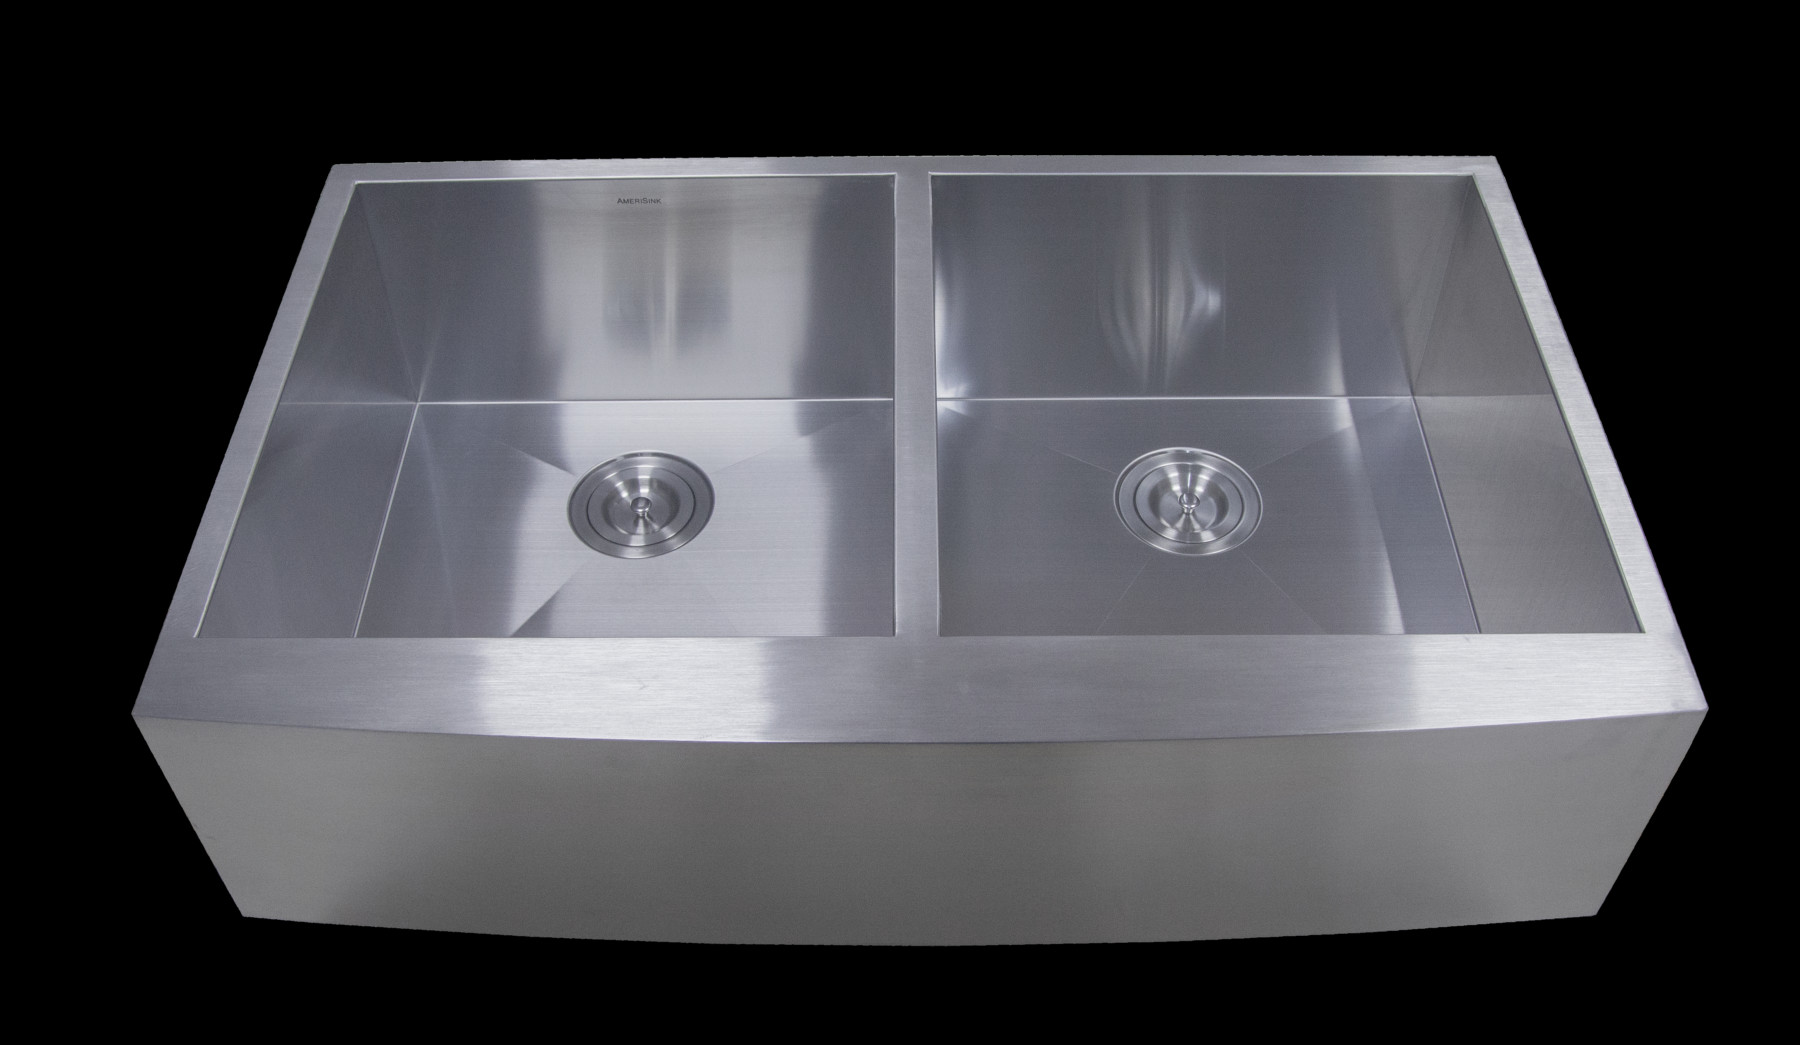 ... Double Bowl Apron Legend Stainless Steel Kitchen Sink. ; 